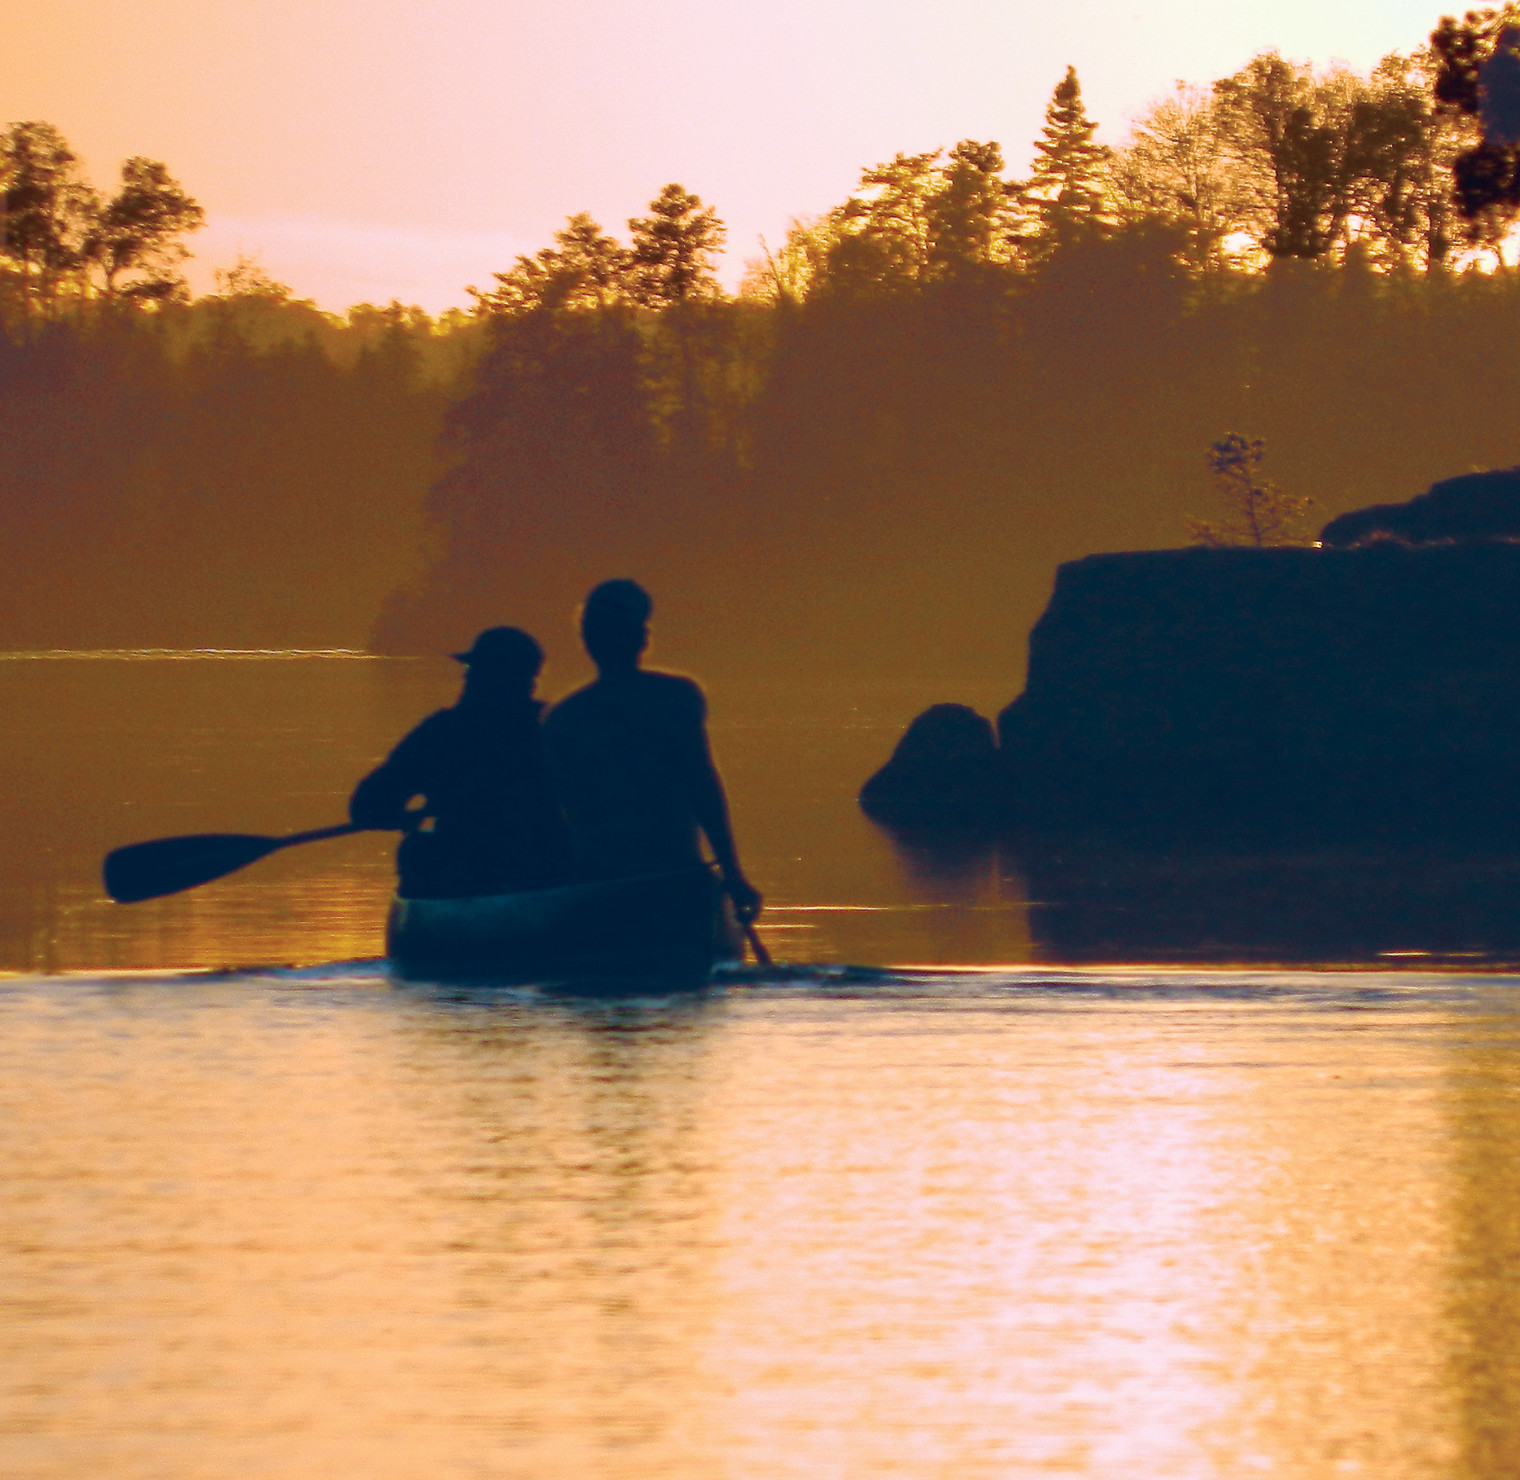 Canoeists paddle into the sunset on Farm Lake, near Ely.